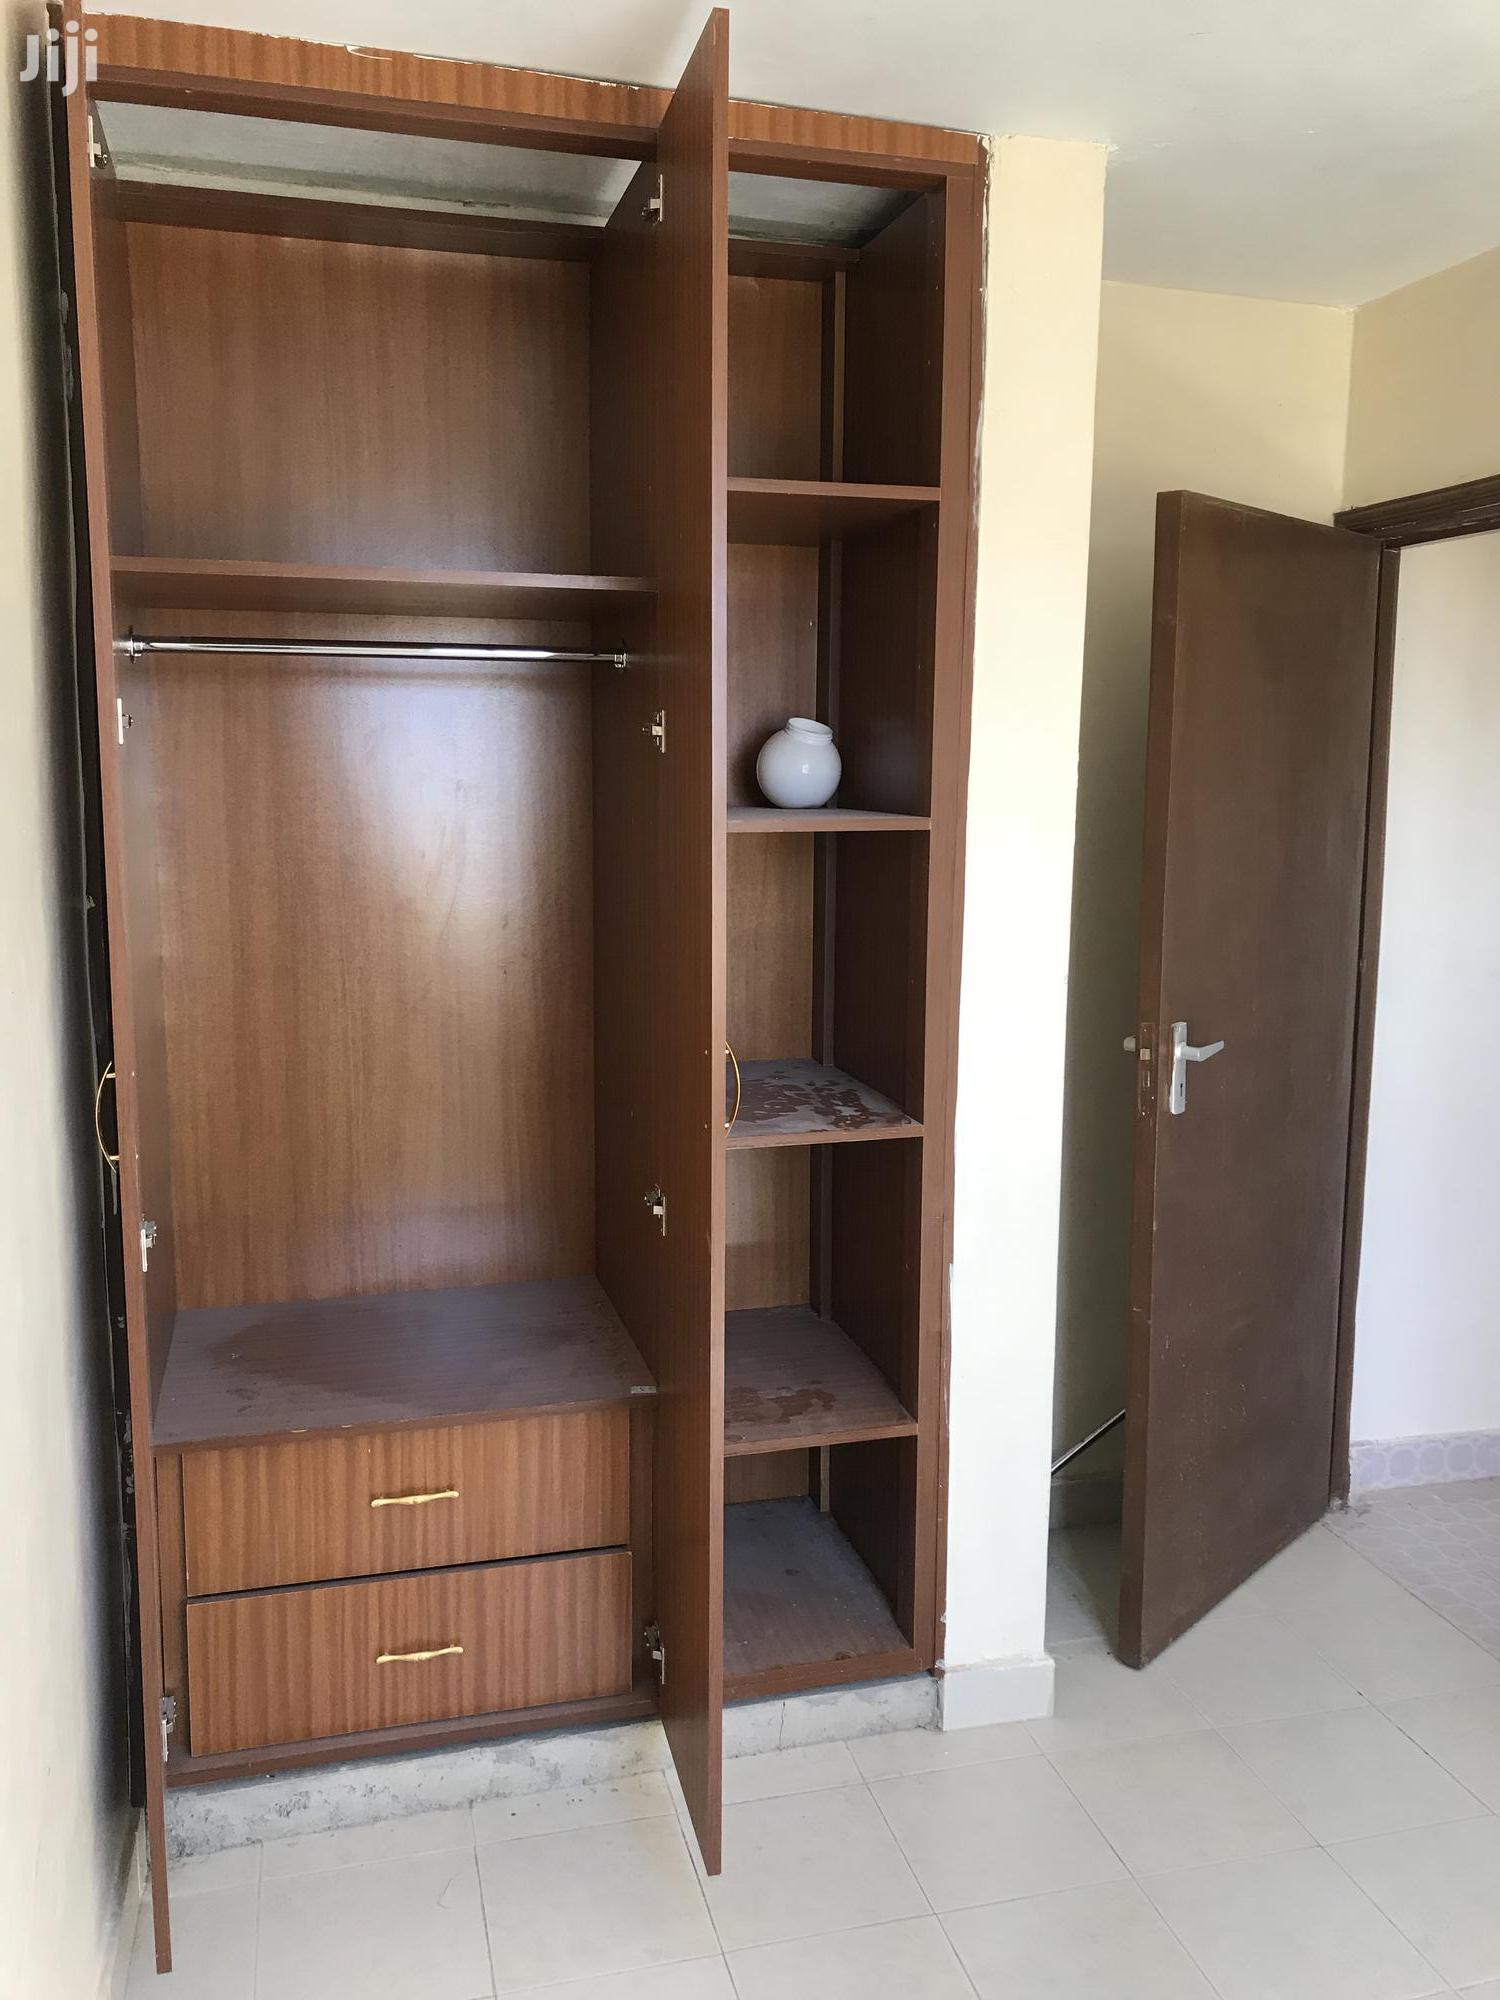 1 Bedroom (Ensuite) Available To Let In Utawala MC | Houses & Apartments For Rent for sale in Utawala, Nairobi, Kenya